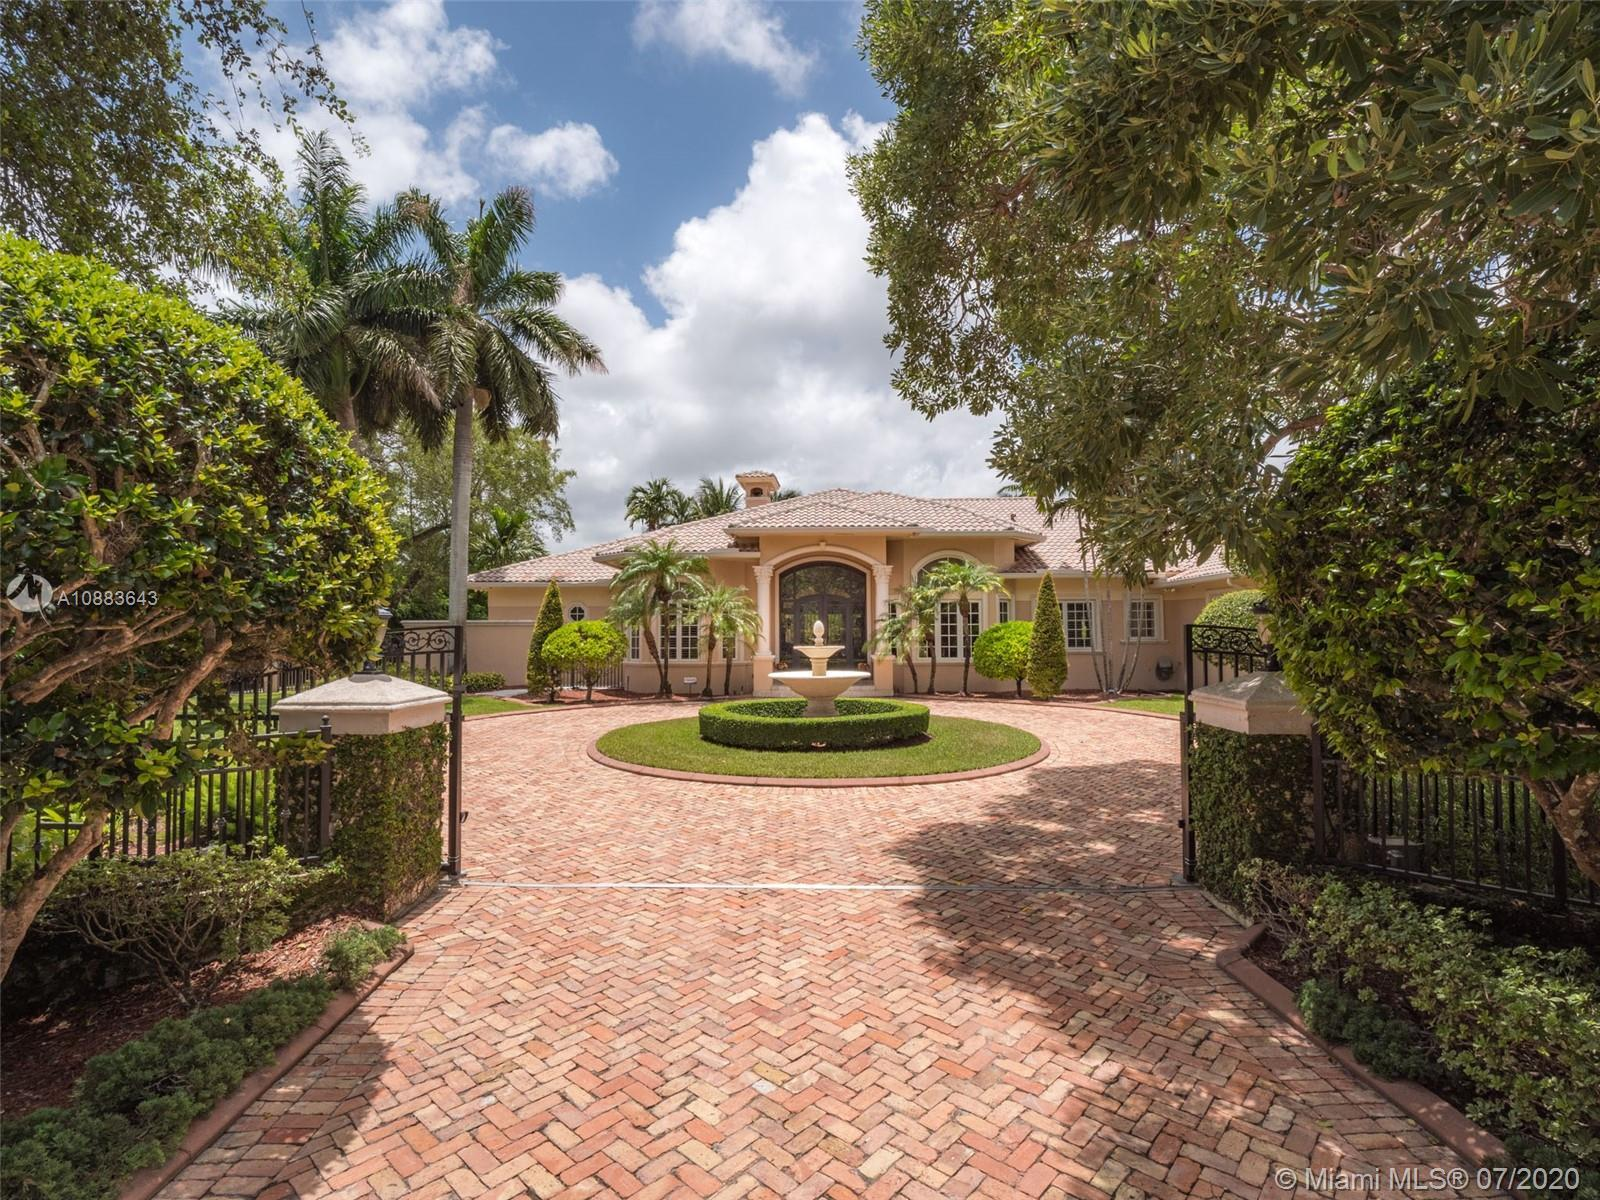 This custom Kenner gated estate sits on an acre lot surrounded by a canopy of lush trees that exudes